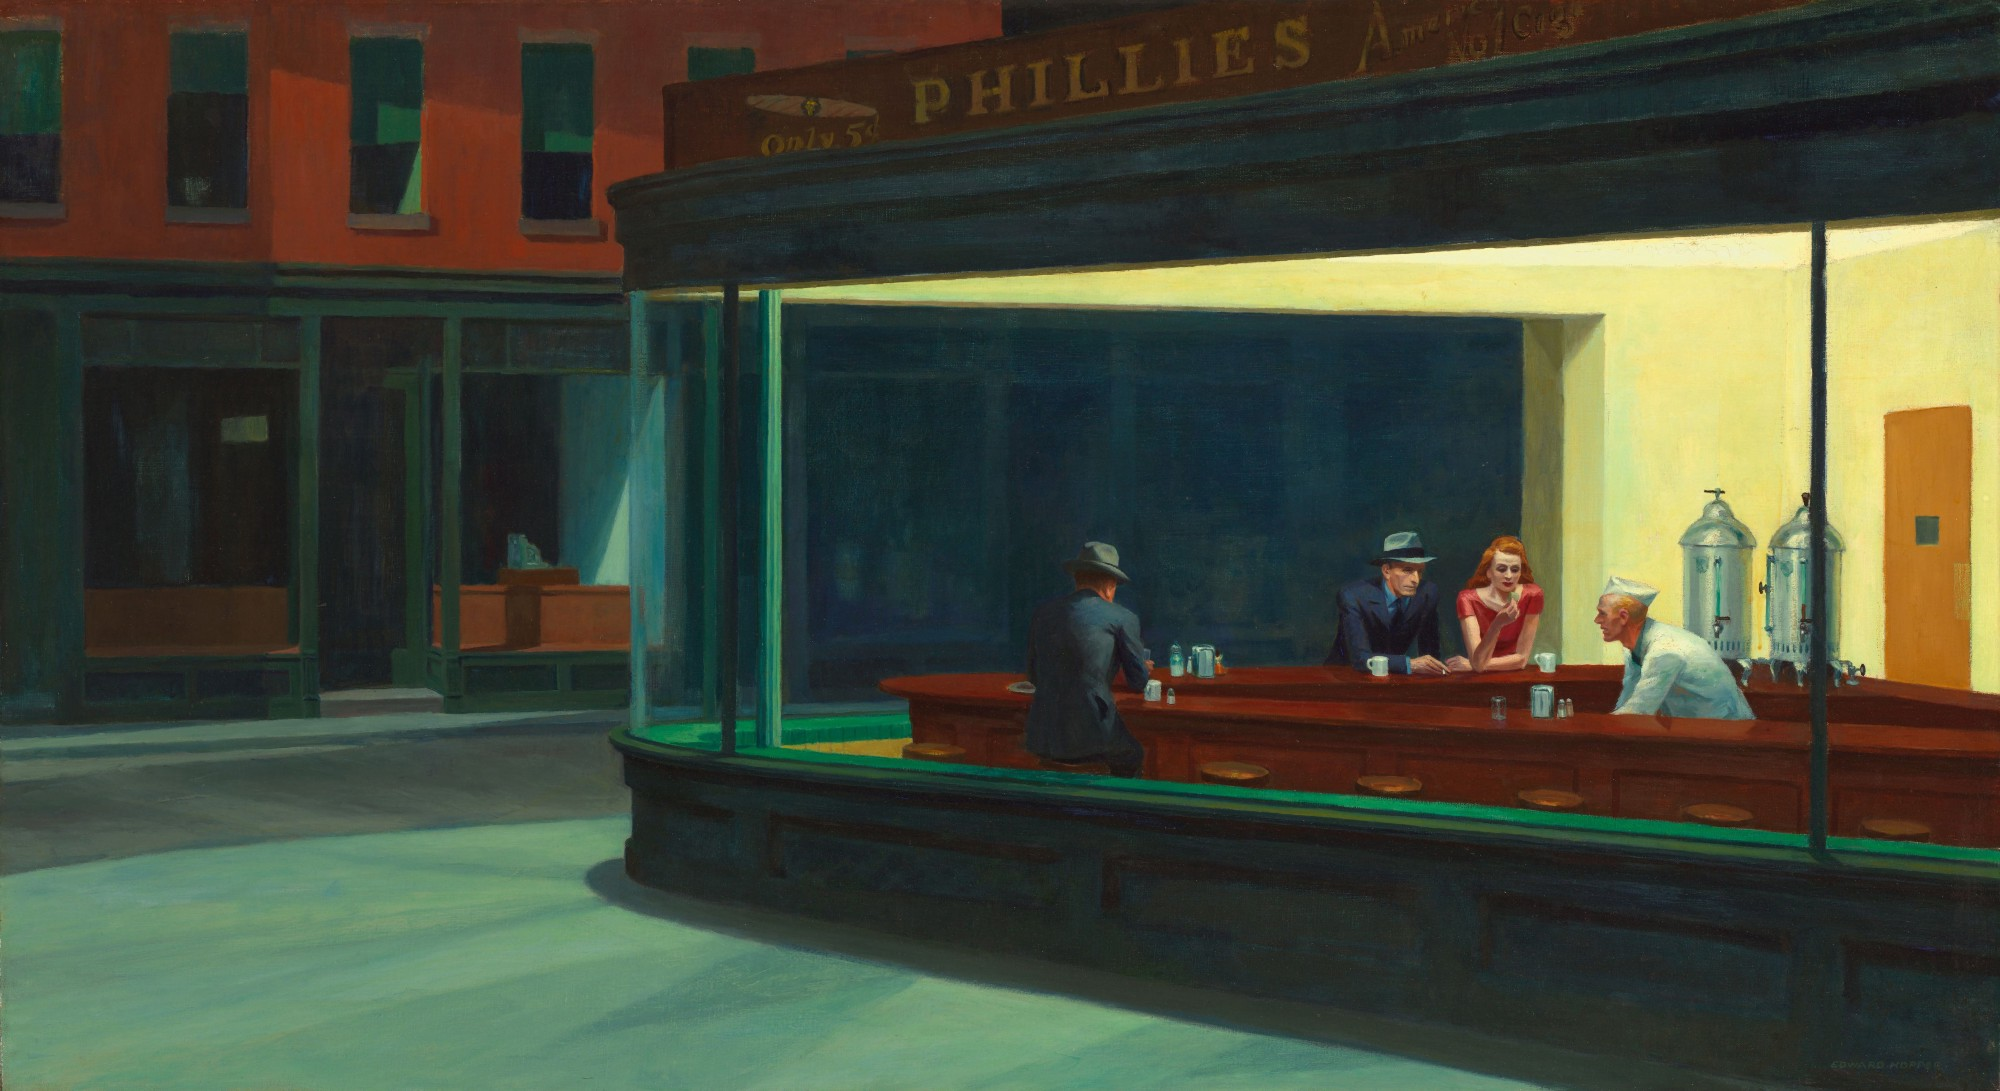 Playing With Raspberry Pi Gpio Pins And Traffic Lights In Java Wiringpi Ohne Sudo Nighthawks Edward Hopper 1942